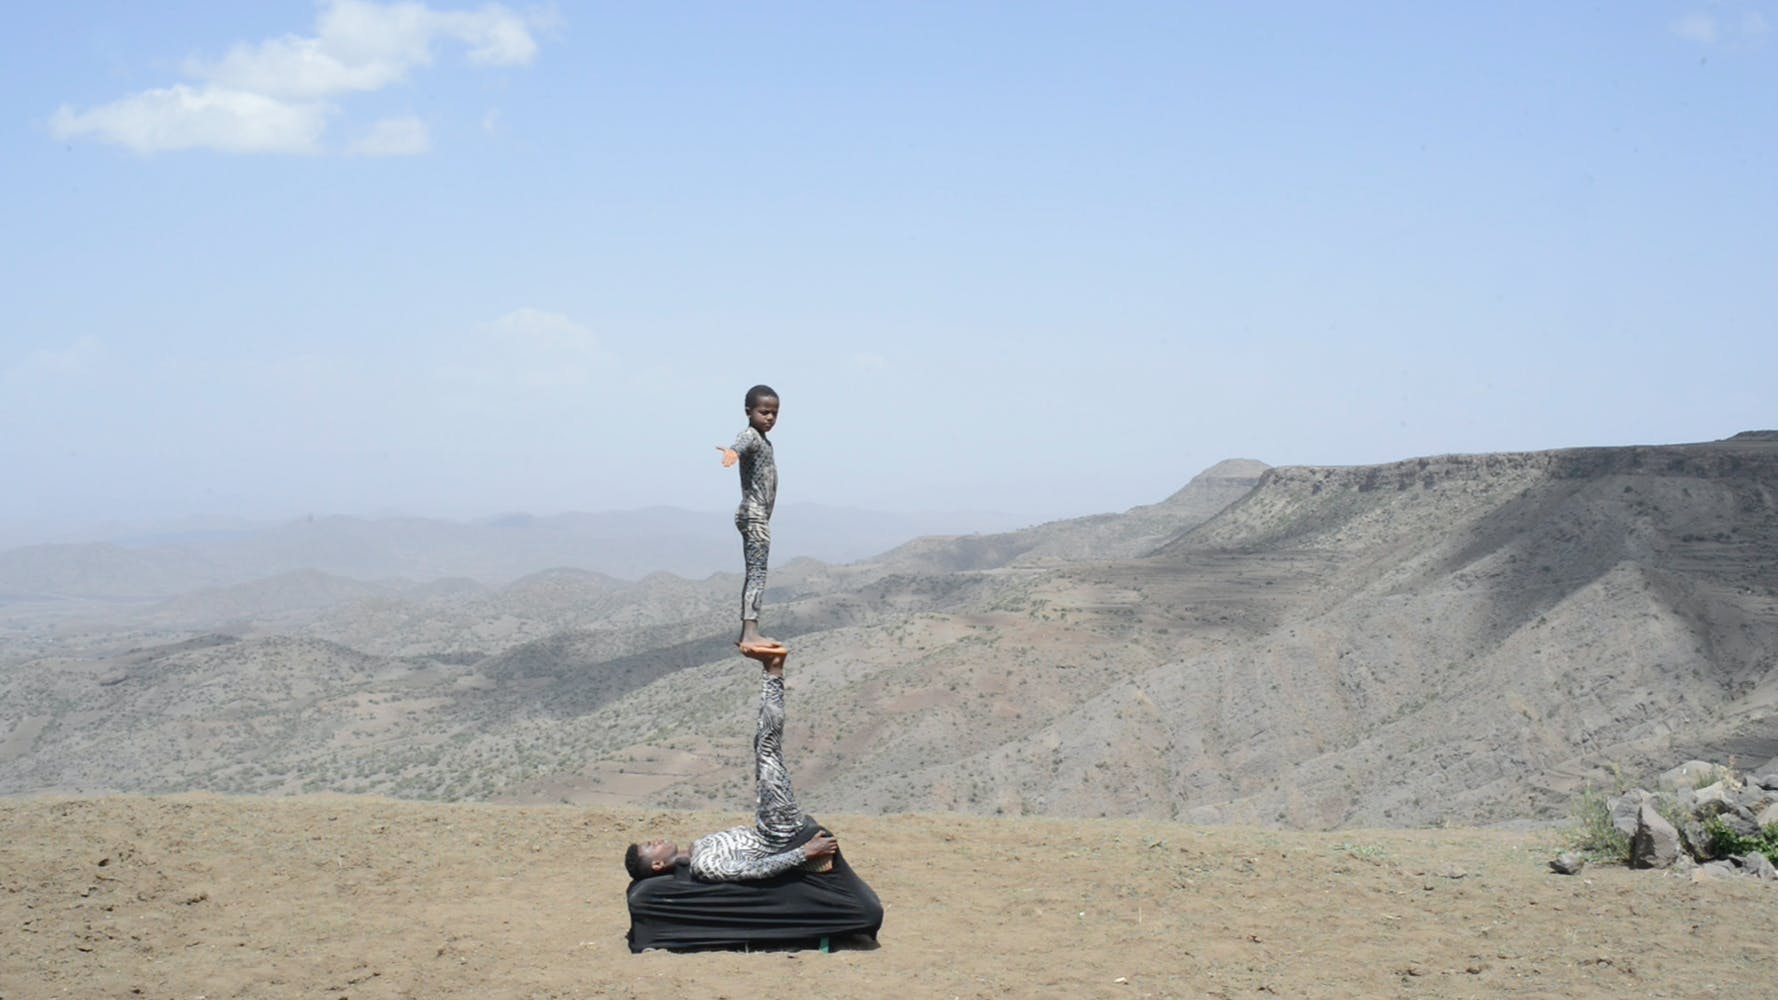 Image of one boy standing on another in the desert